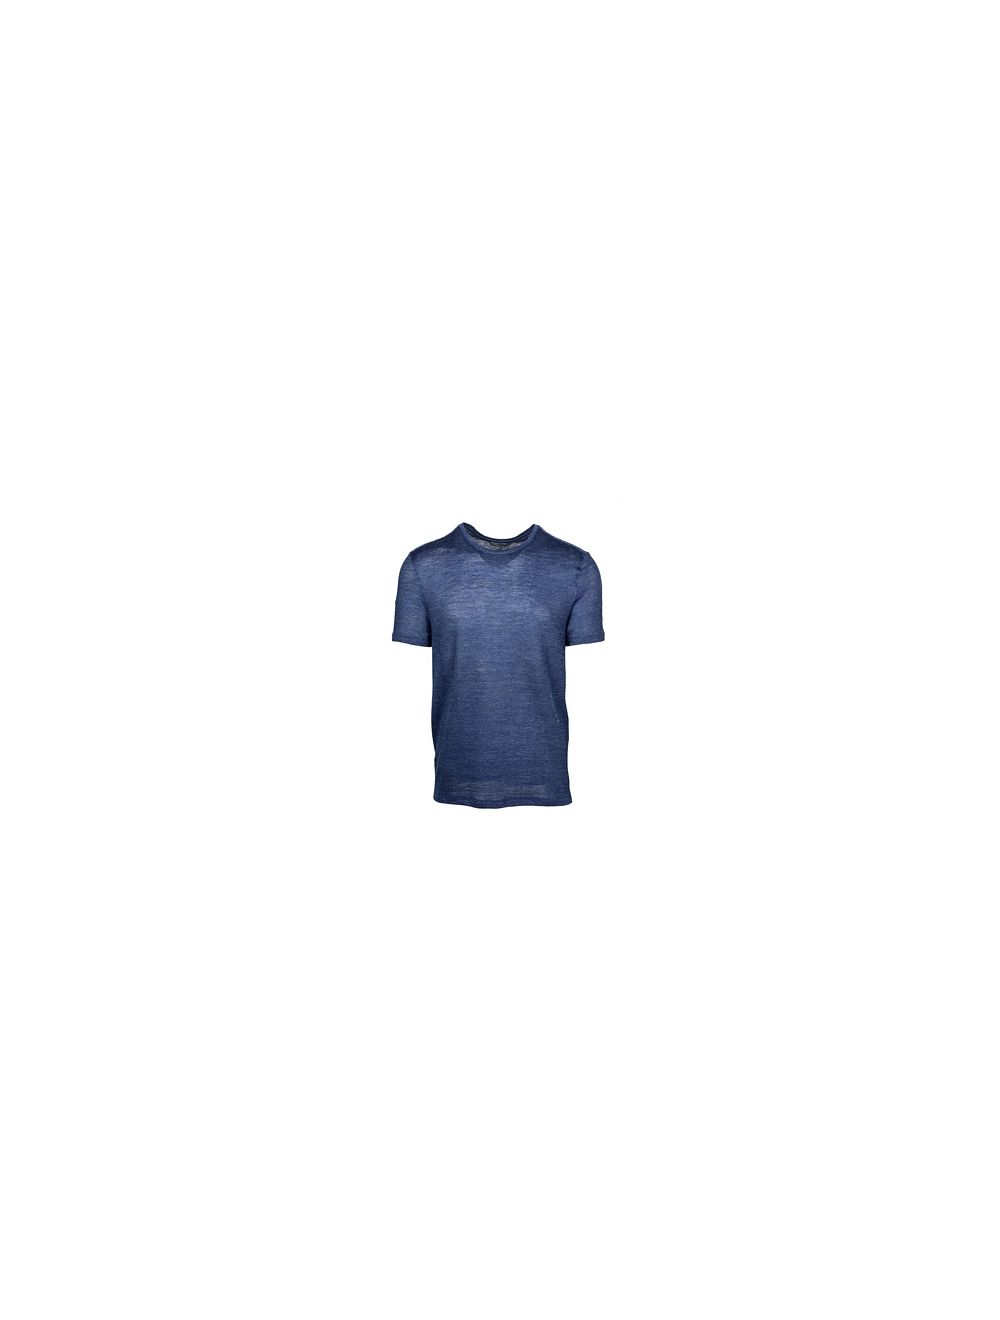 John Varvatos T-Shirt - Blue